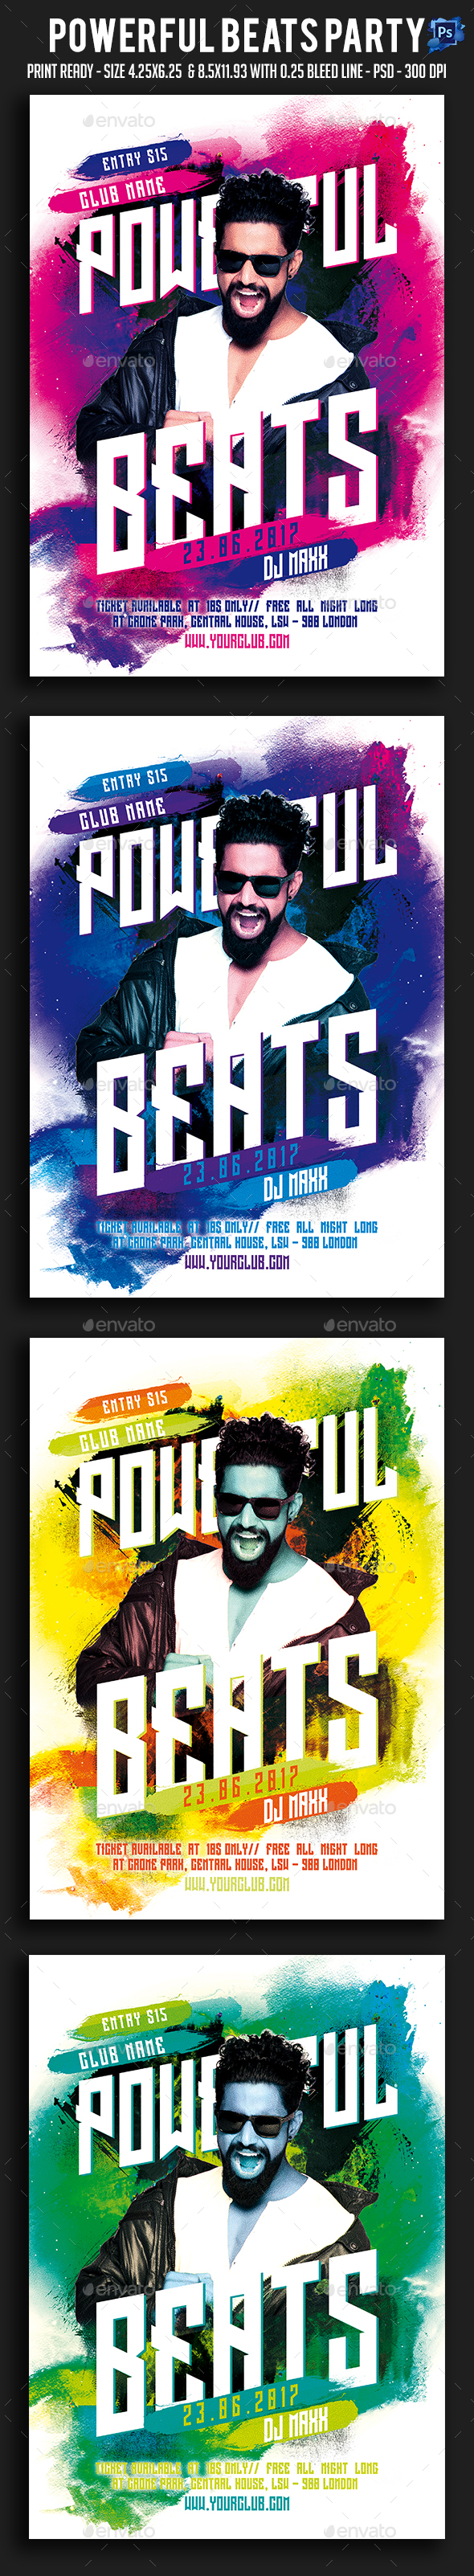 Powerful Beats Party Flyer - Clubs & Parties Events